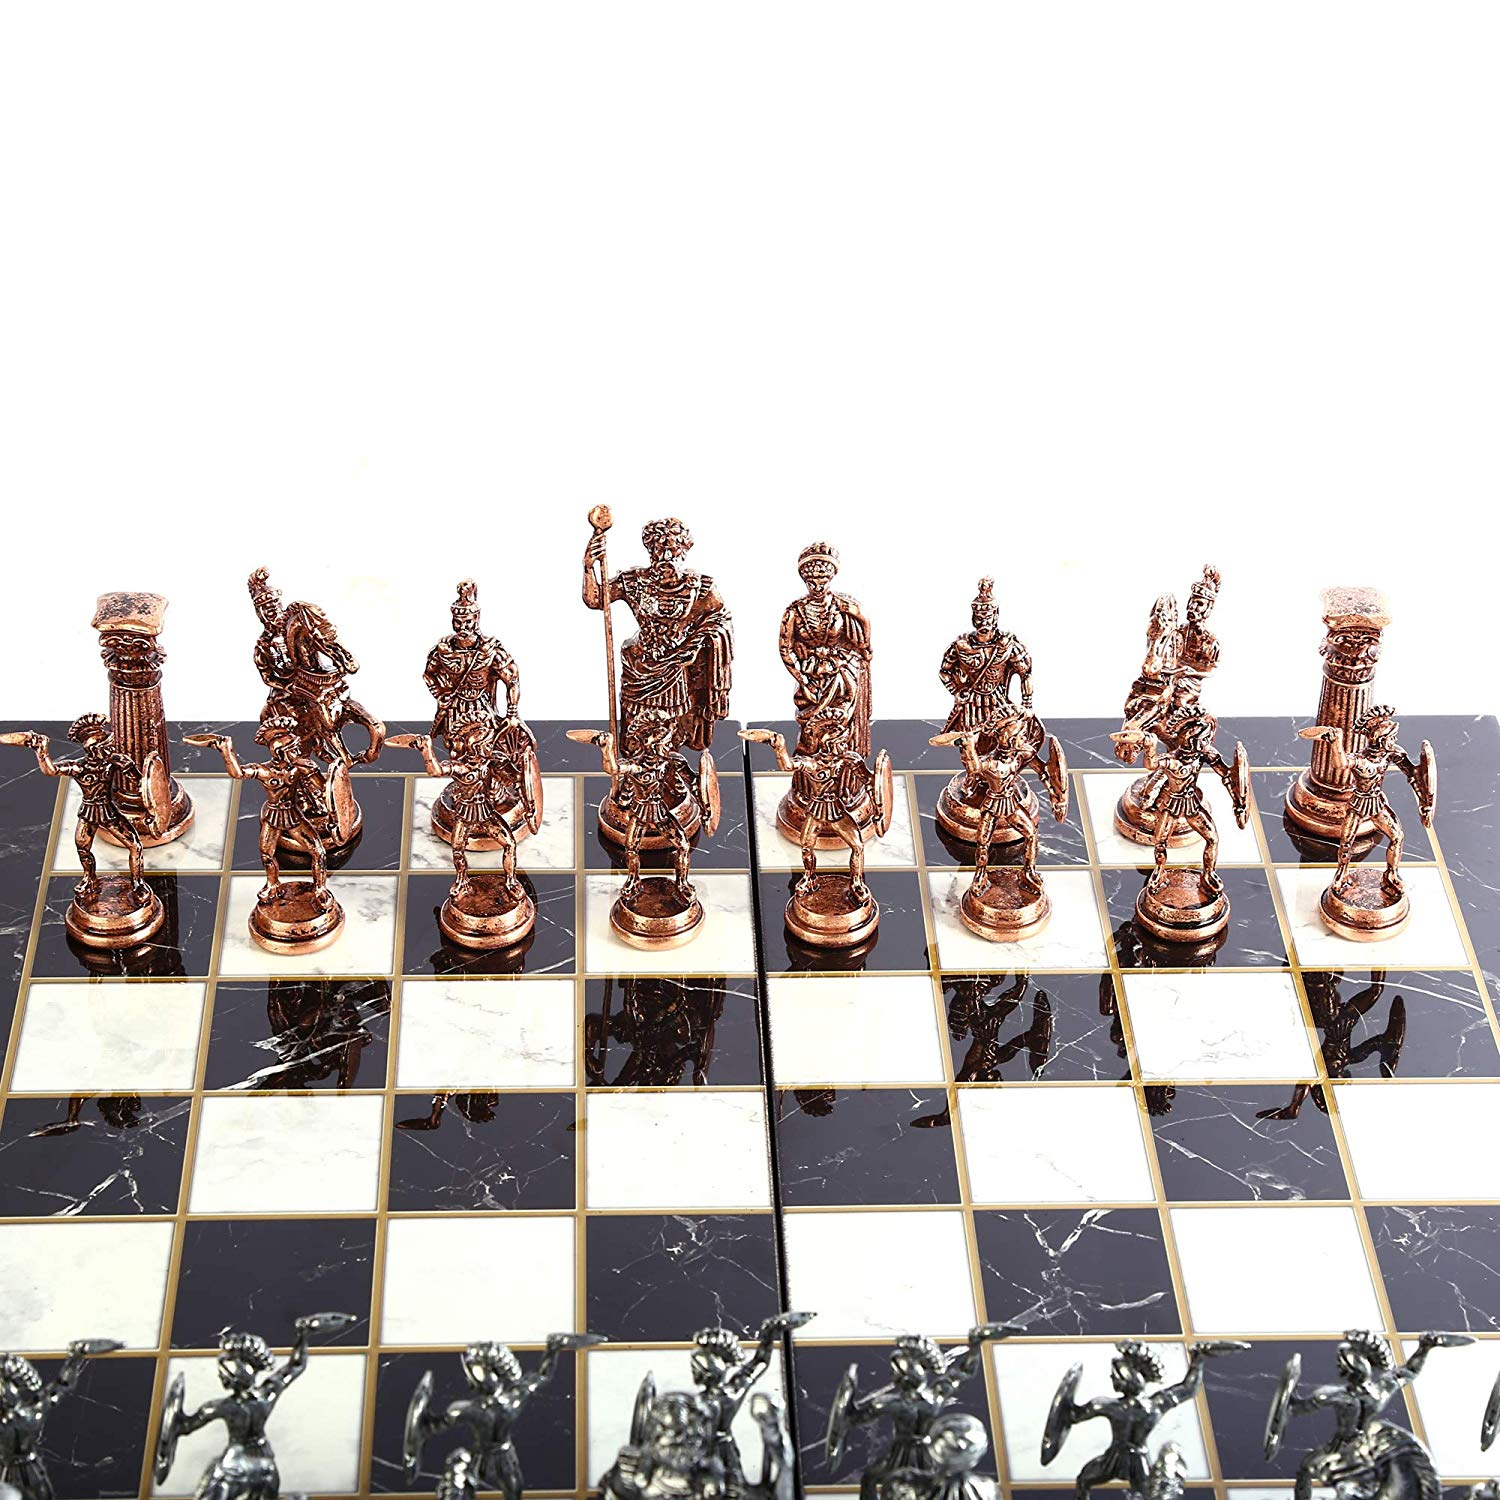 Historical Antique Copper Rome Figures Metal Chess Set for Adult,Handmade Pieces and Marble Design Wood Chess Board King 11 cm 2